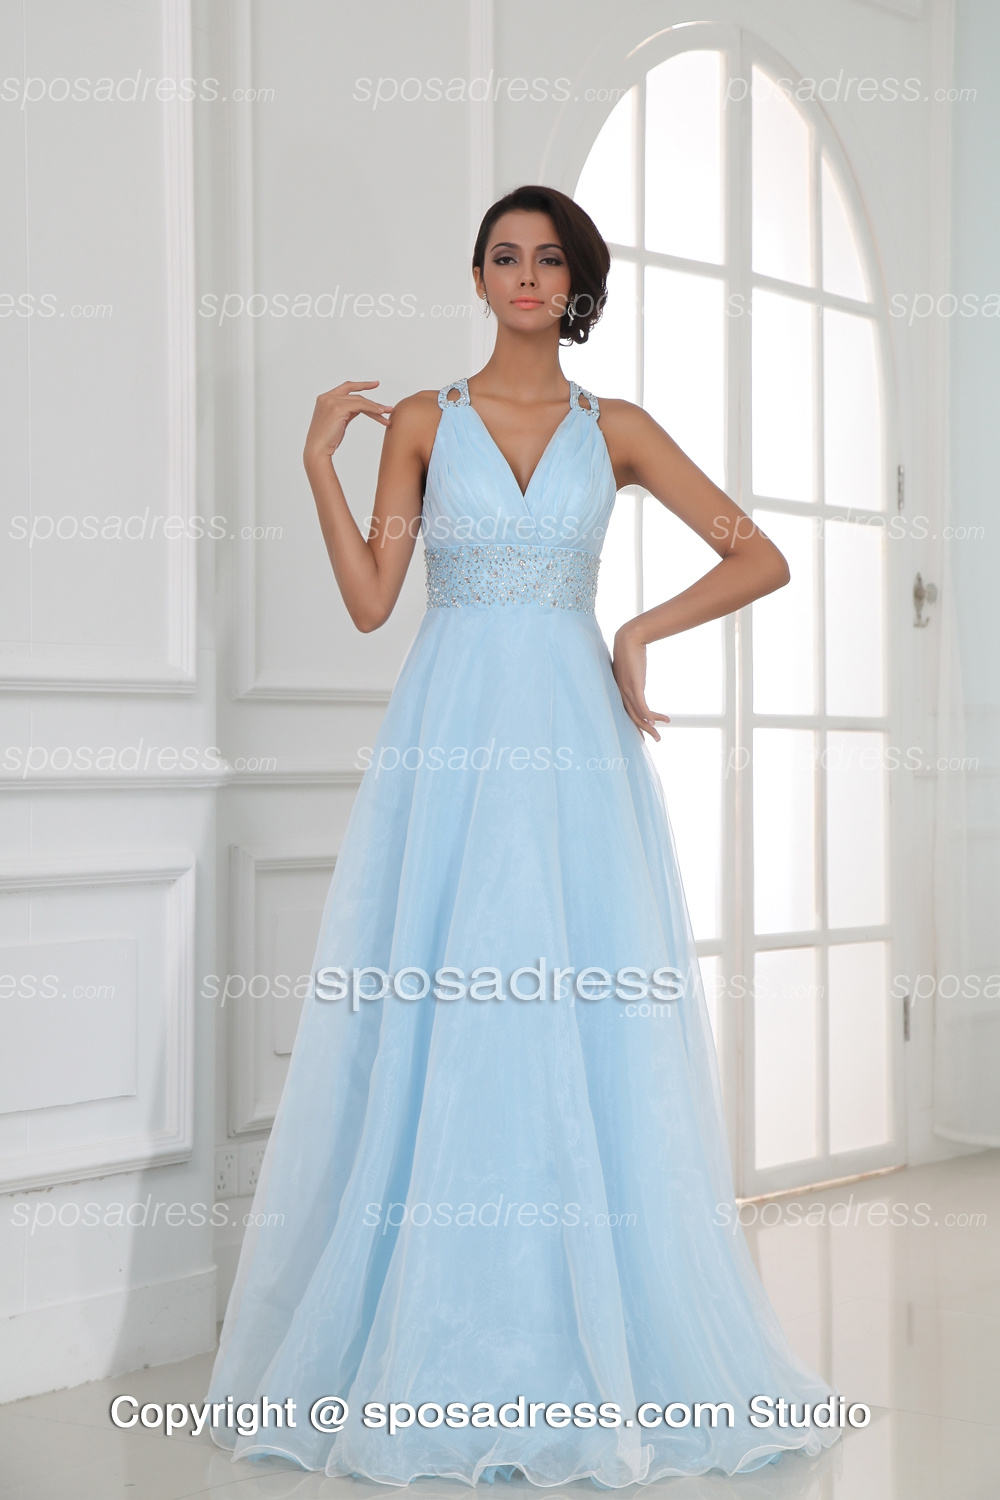 Fairytale V Neckline Sequined Light Sky Blue Organza Evening Gown - Sposadress.com